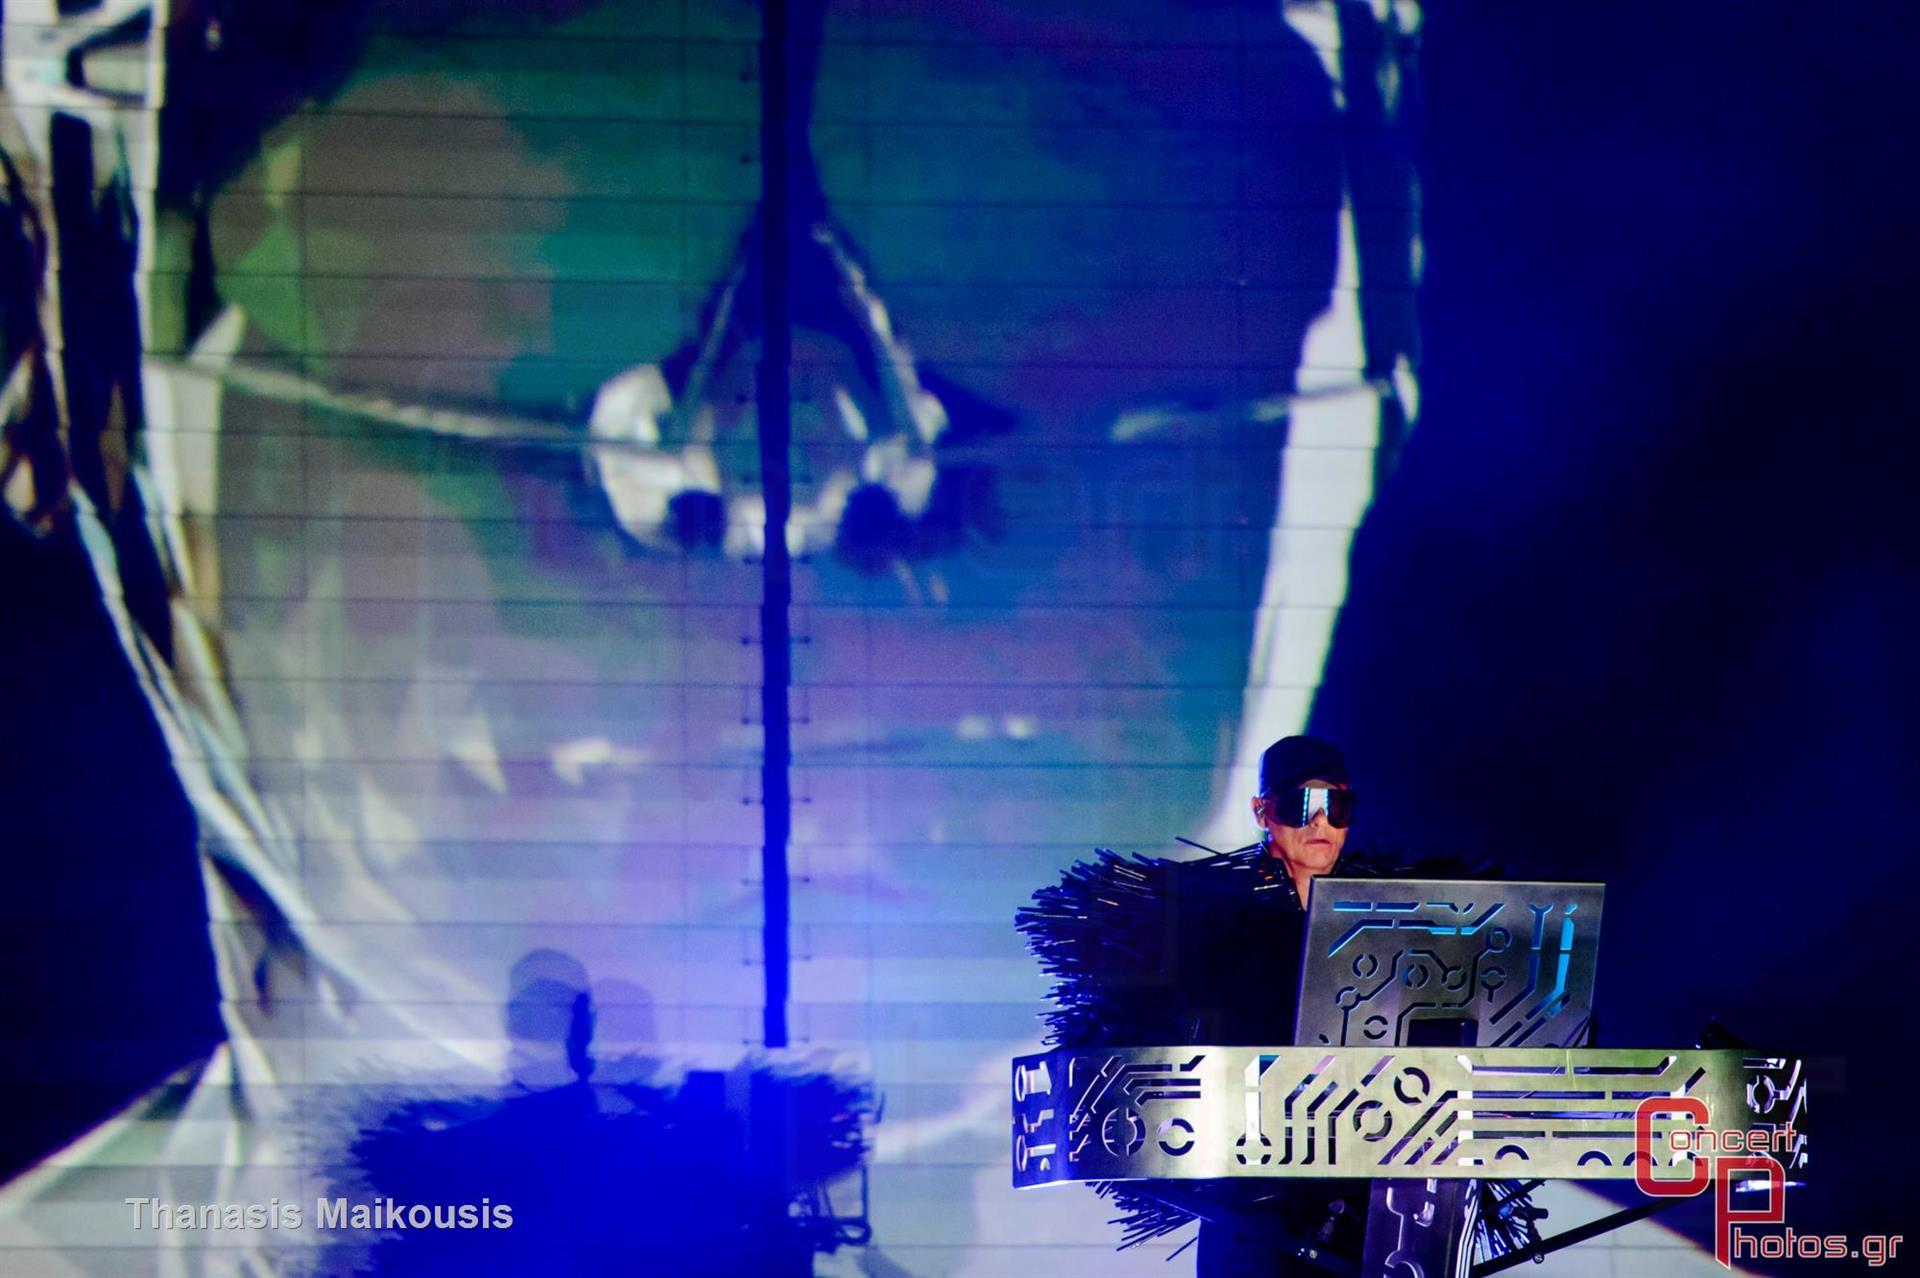 Pet Shop Boys-Pet Shop Boys photographer: Thanasis Maikousis - concertphotos_-9863